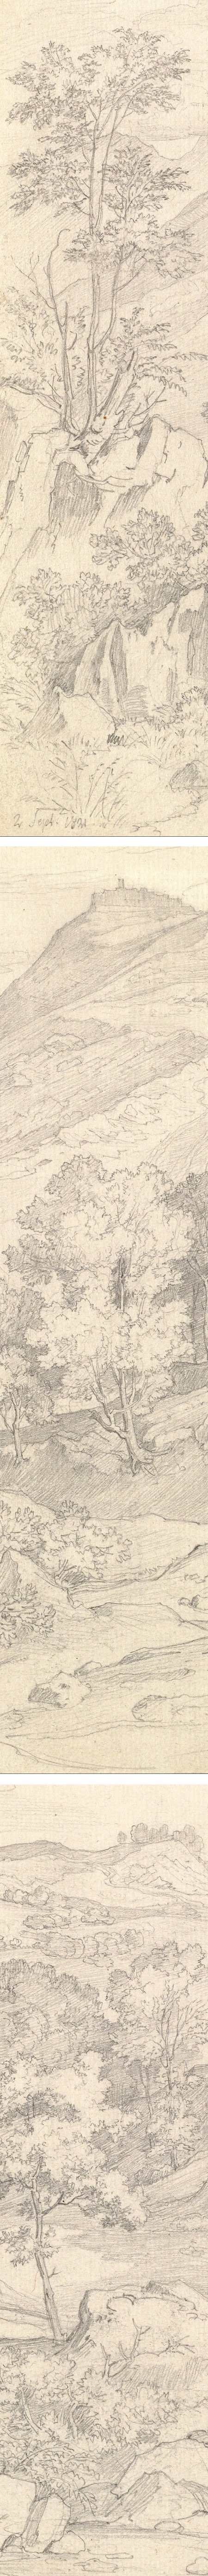 Heinrich Reinhold pencil landscape drawing: A View of Civitella from the Serpentara next to Olevano (details)